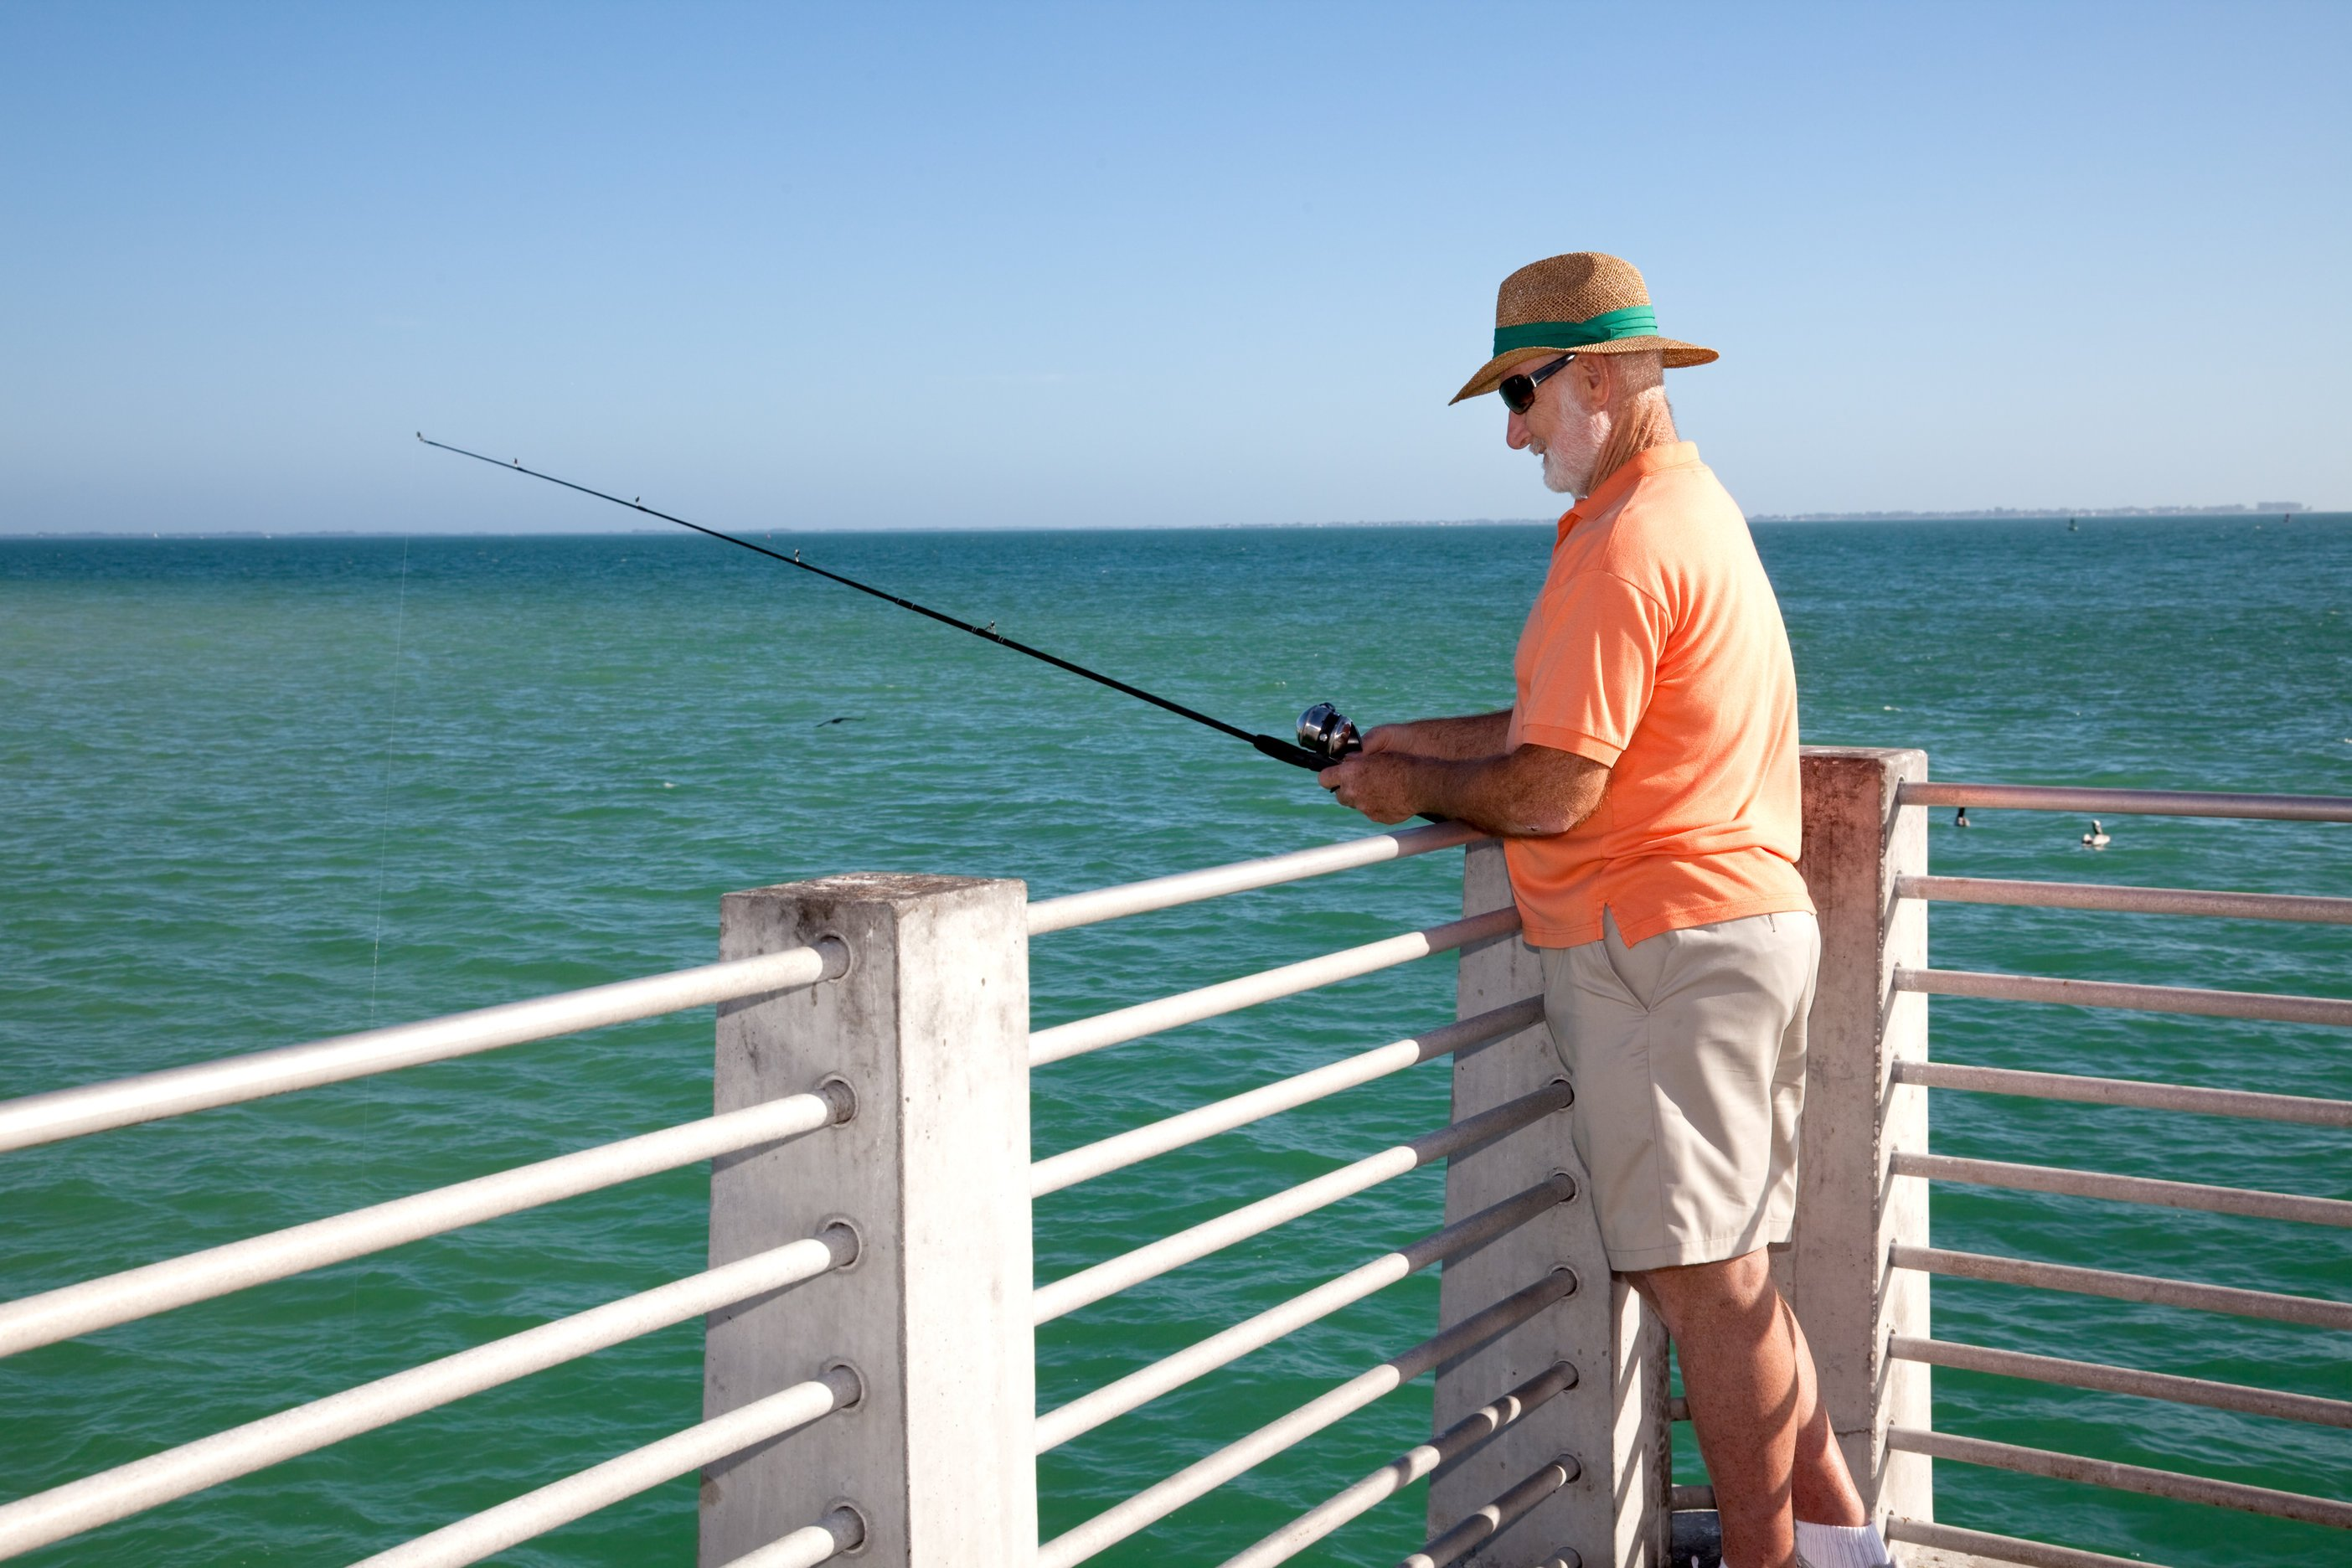 senior angler fishing from a pier